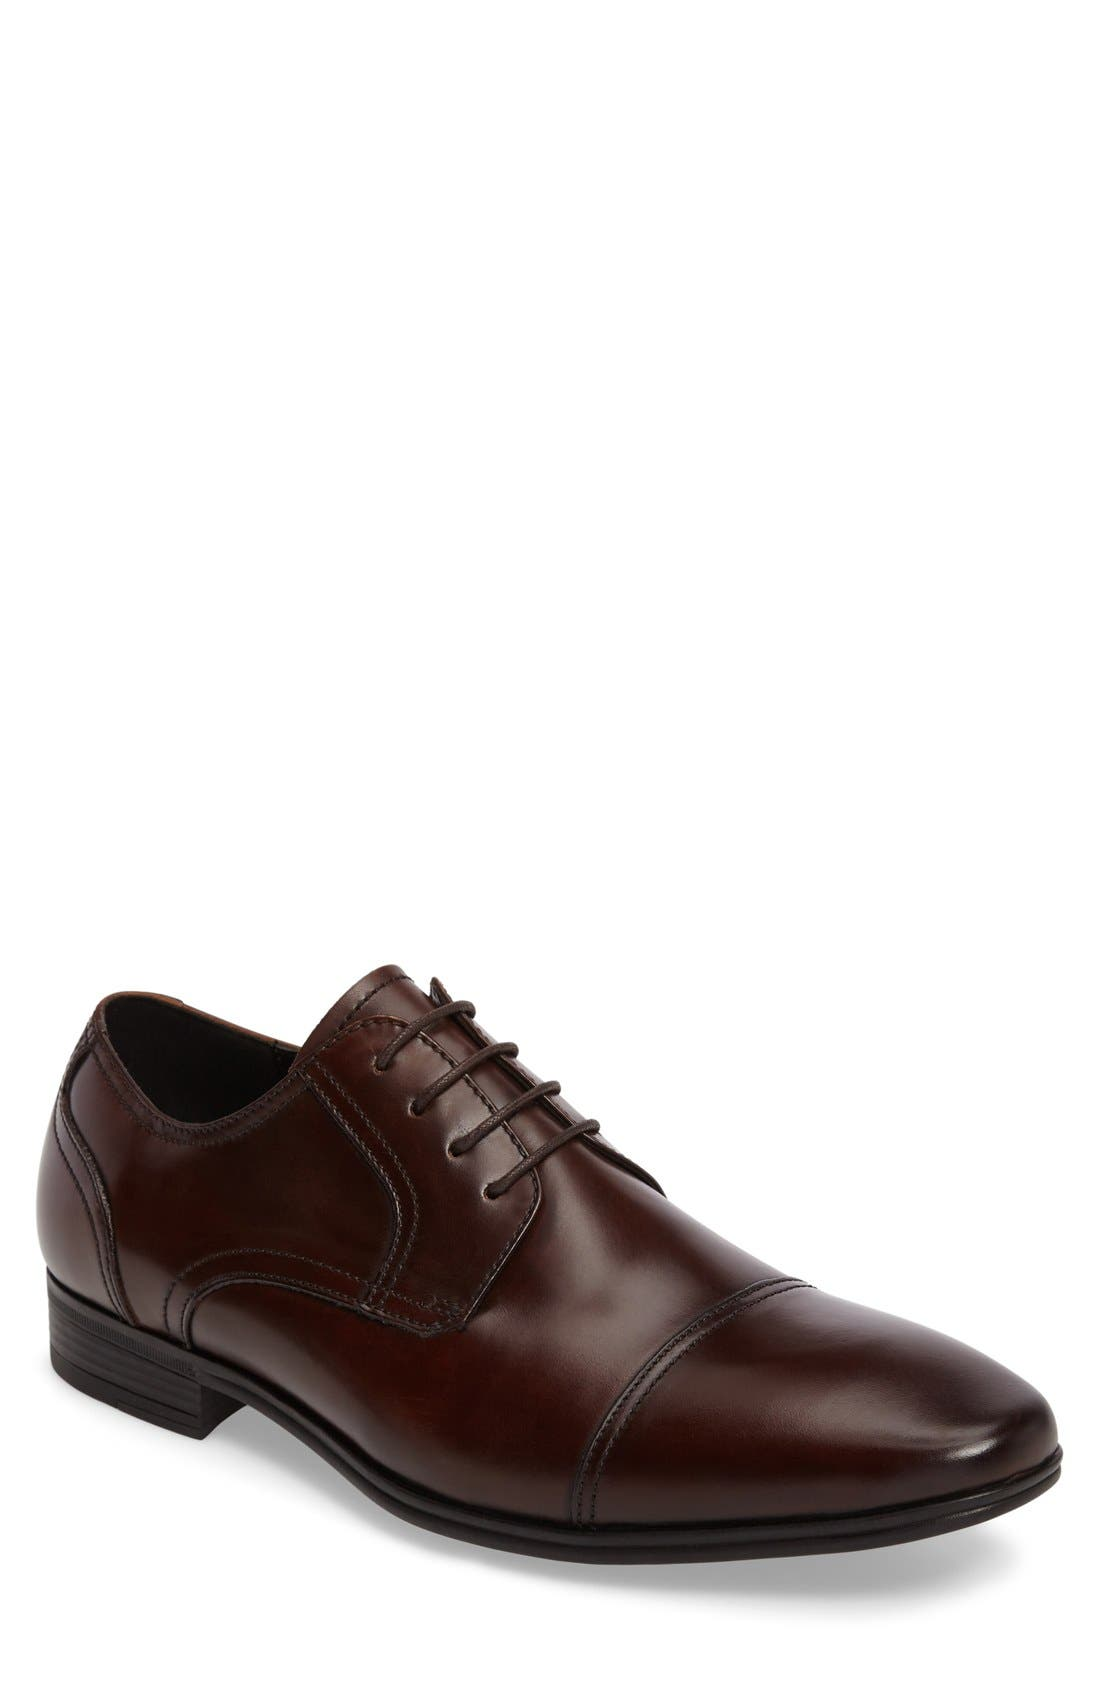 Alternate Image 1 Selected - Reaction Kenneth Cole In a Min-ute Oxford (Men)